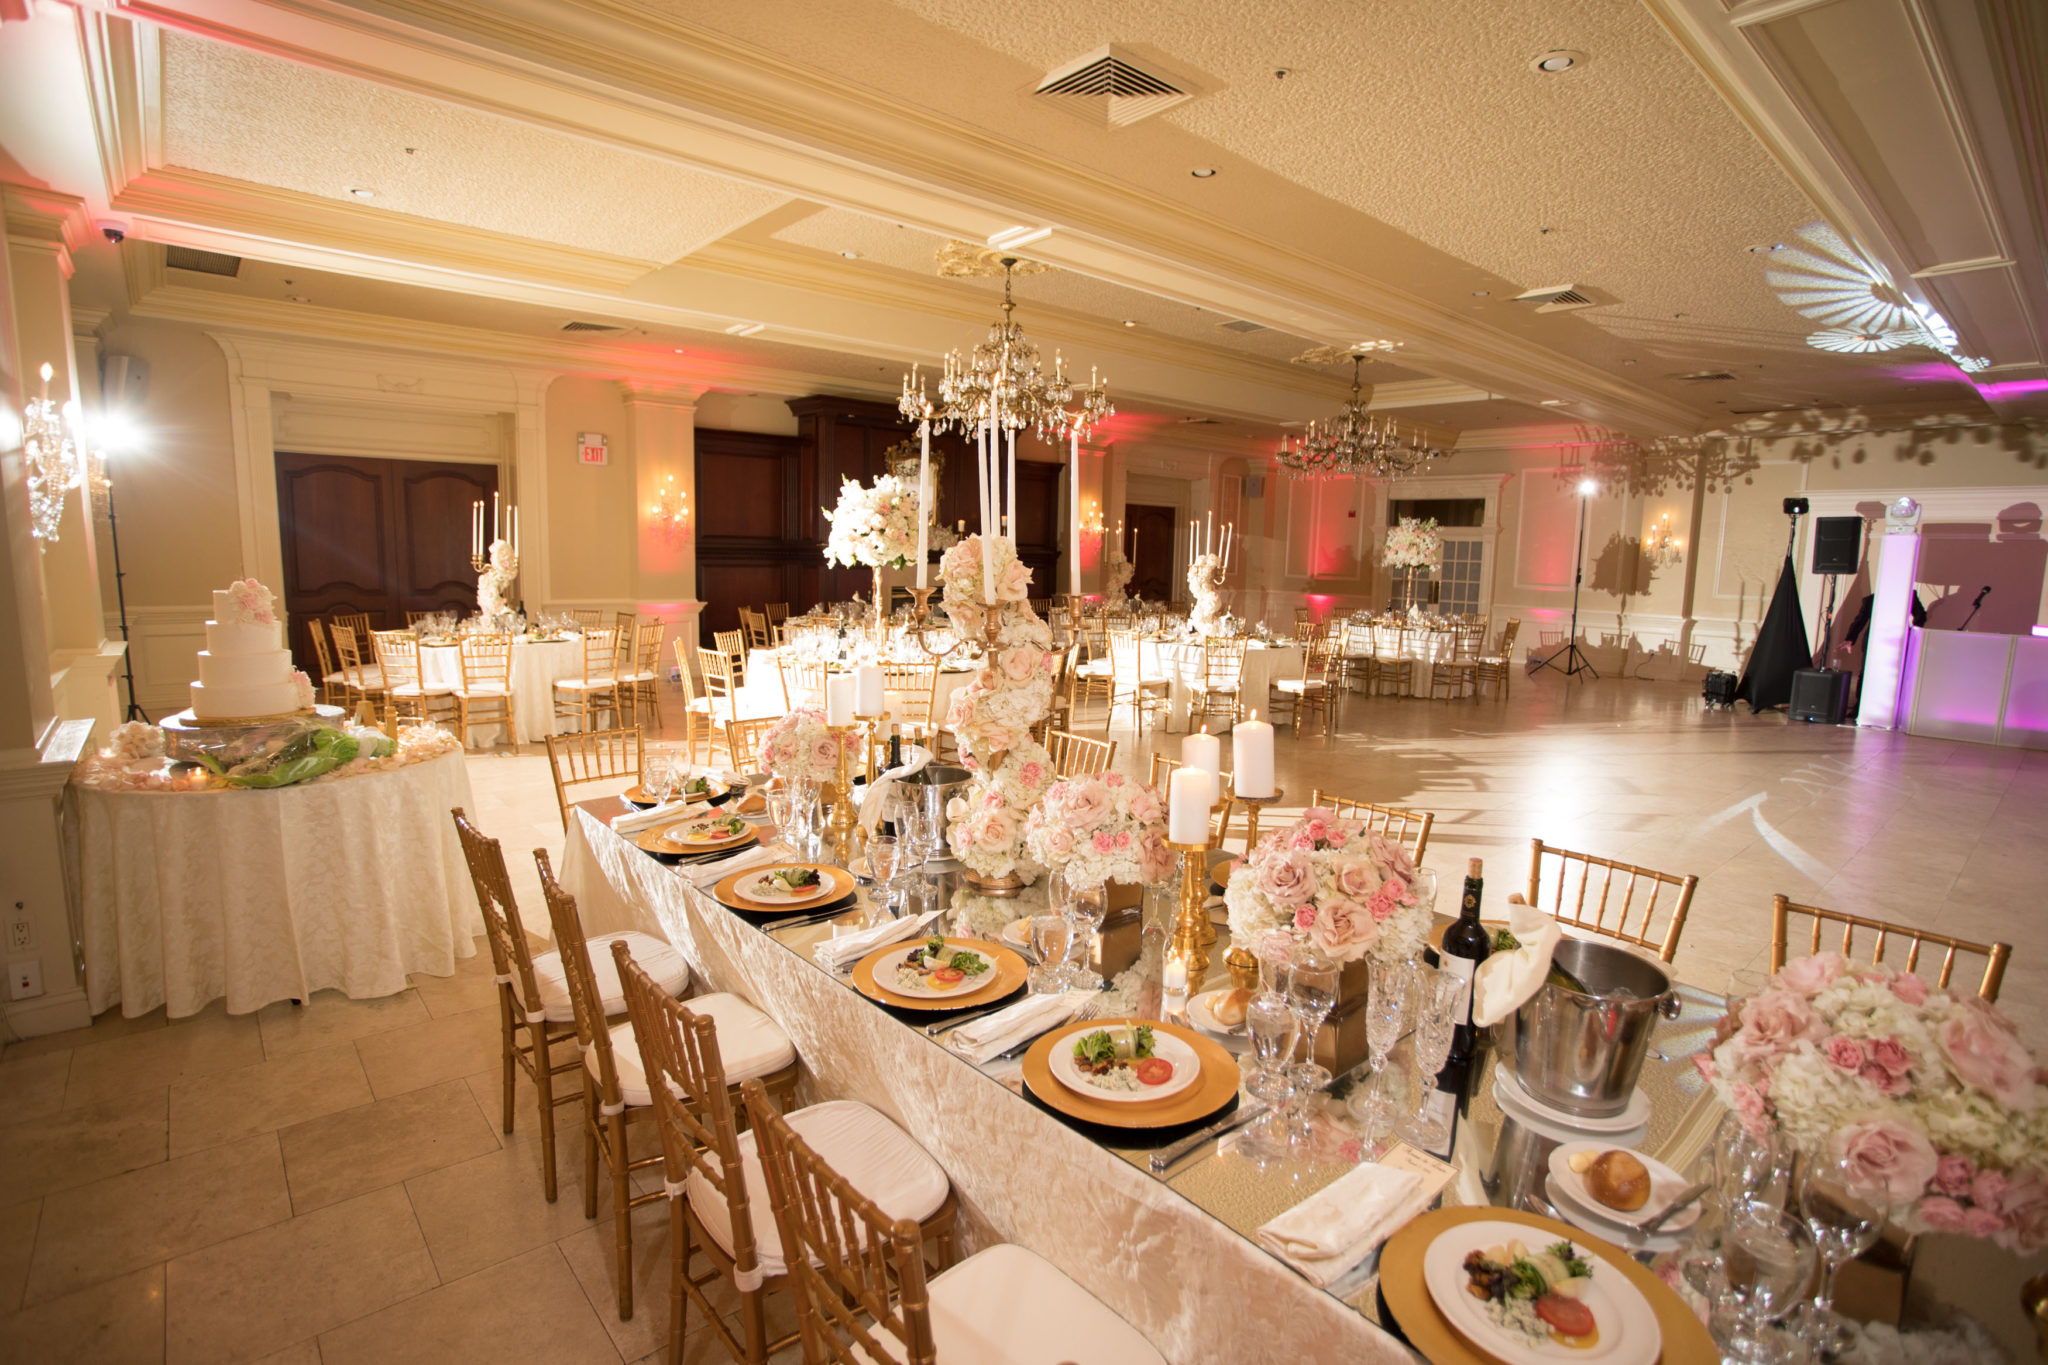 The Importance Of Hiring An Event Planner!